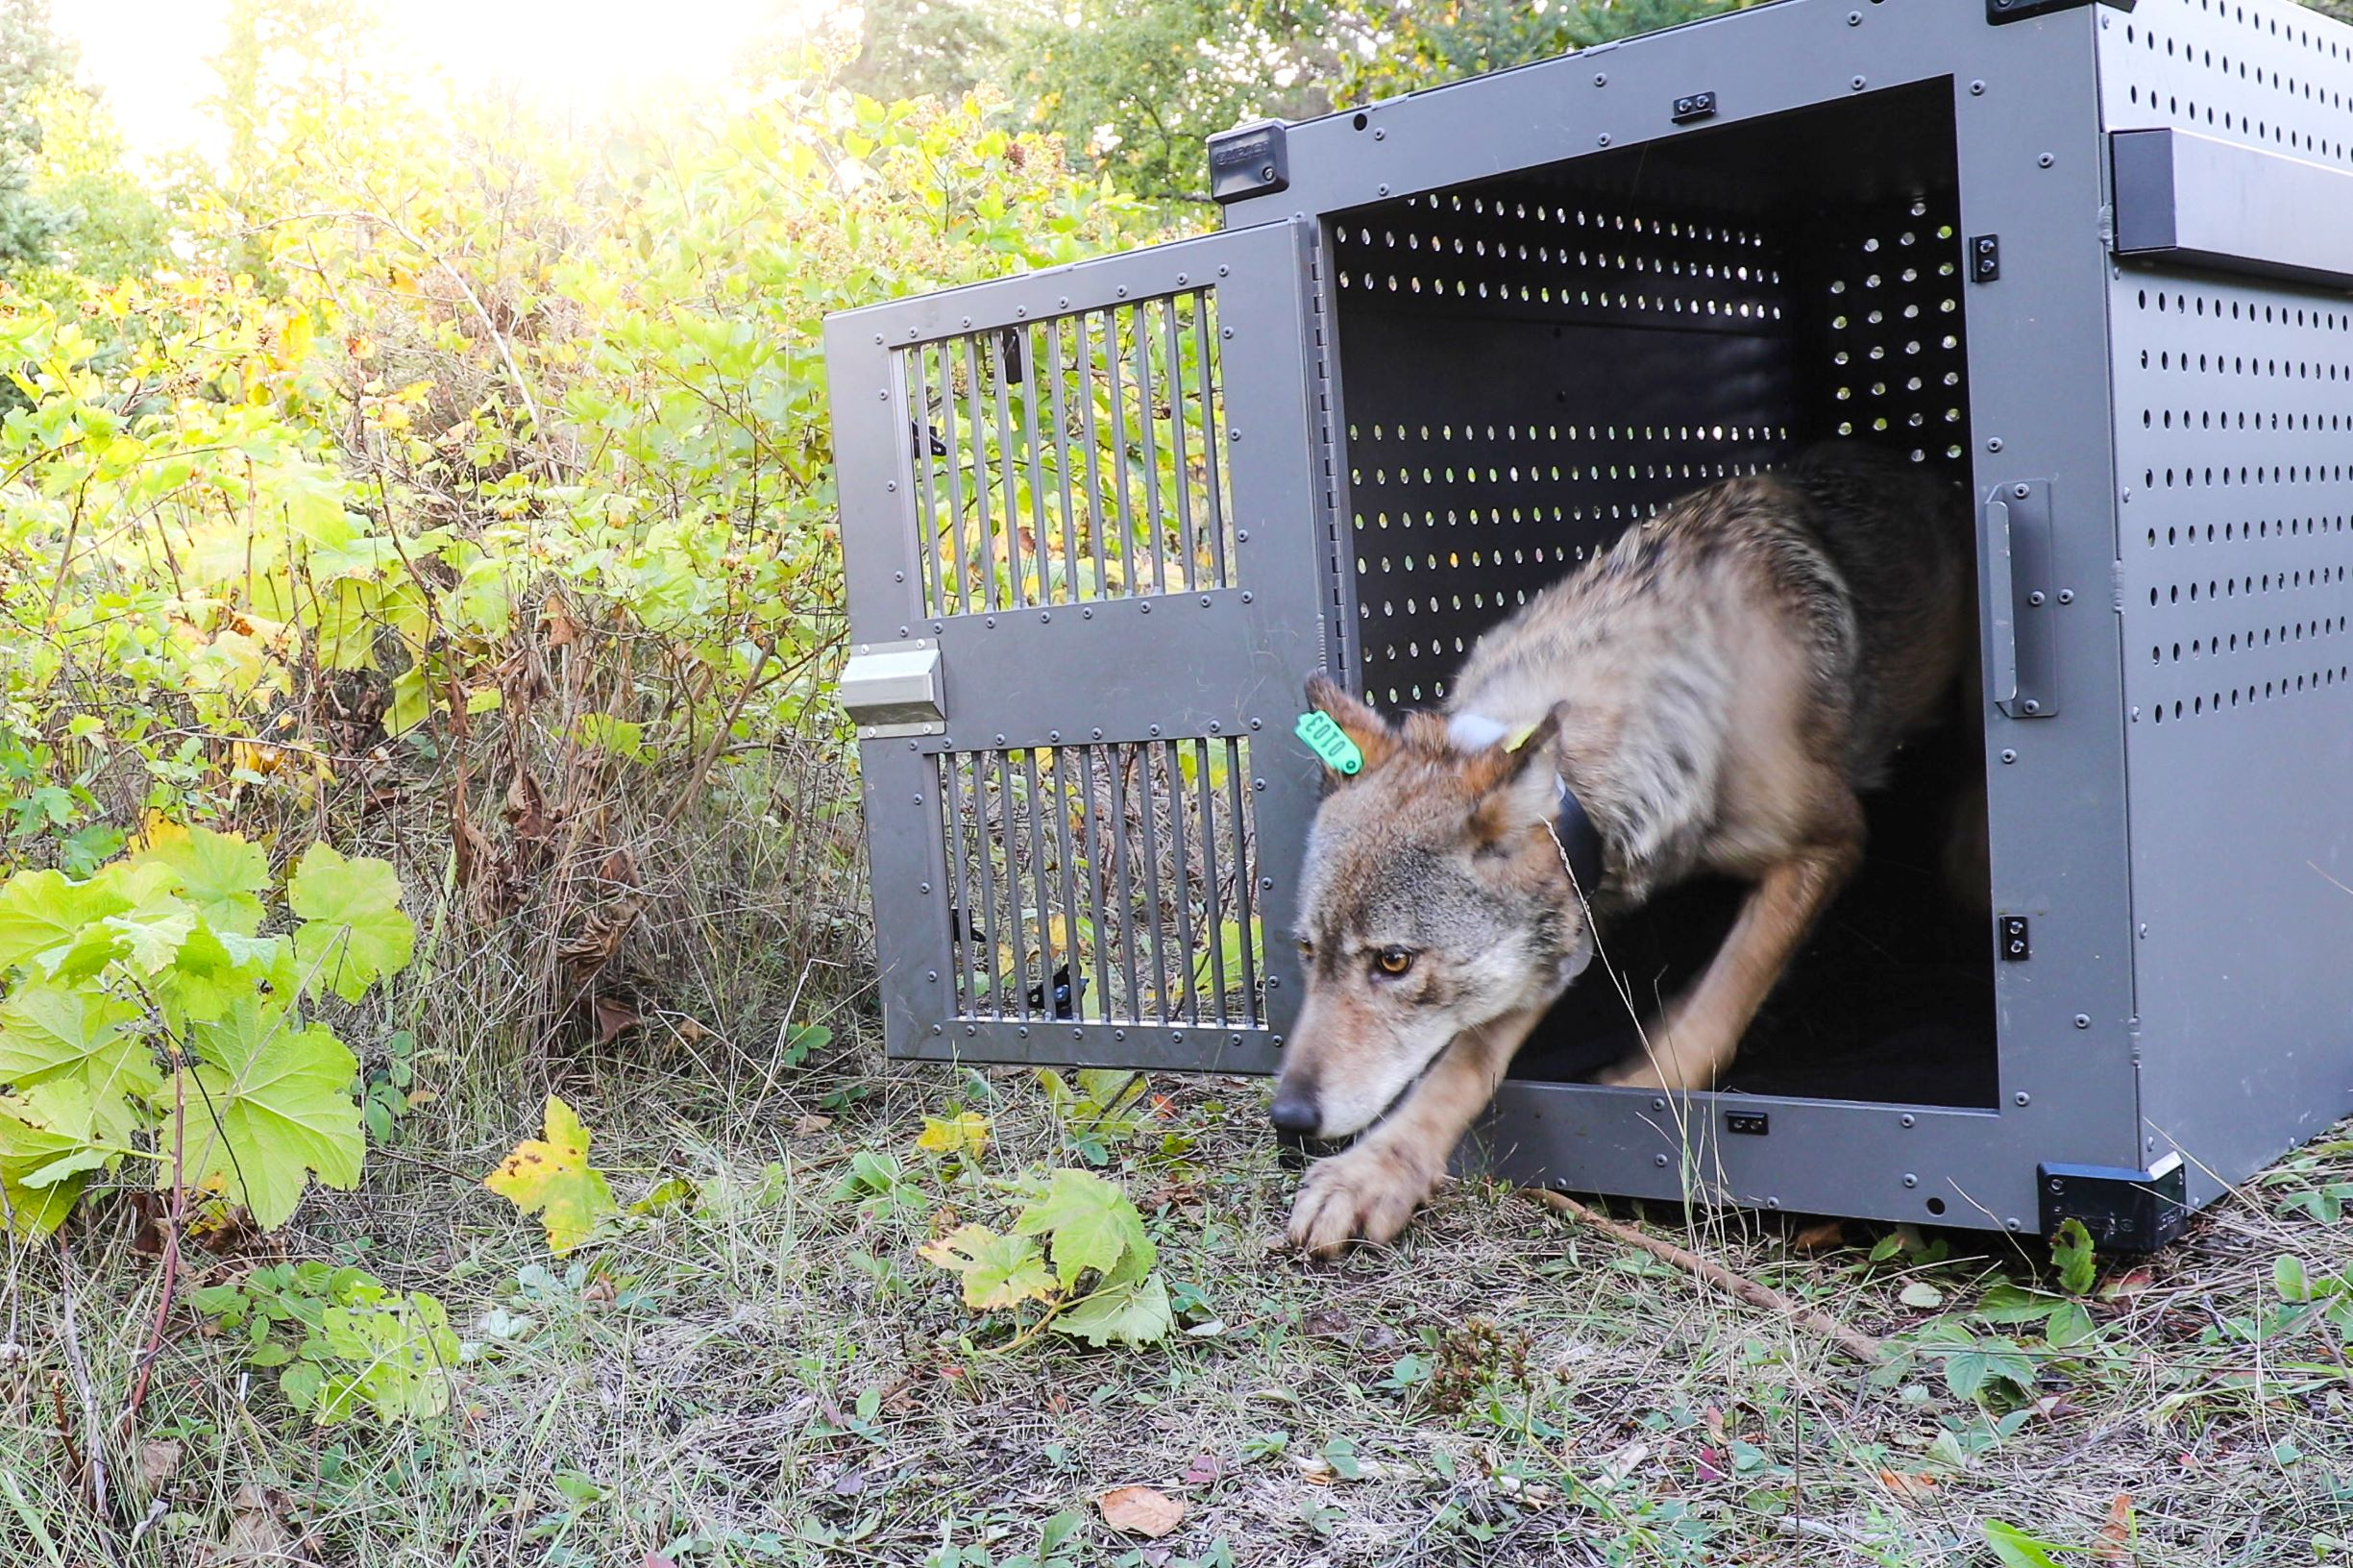 A female wolf emerges from her crate on the island